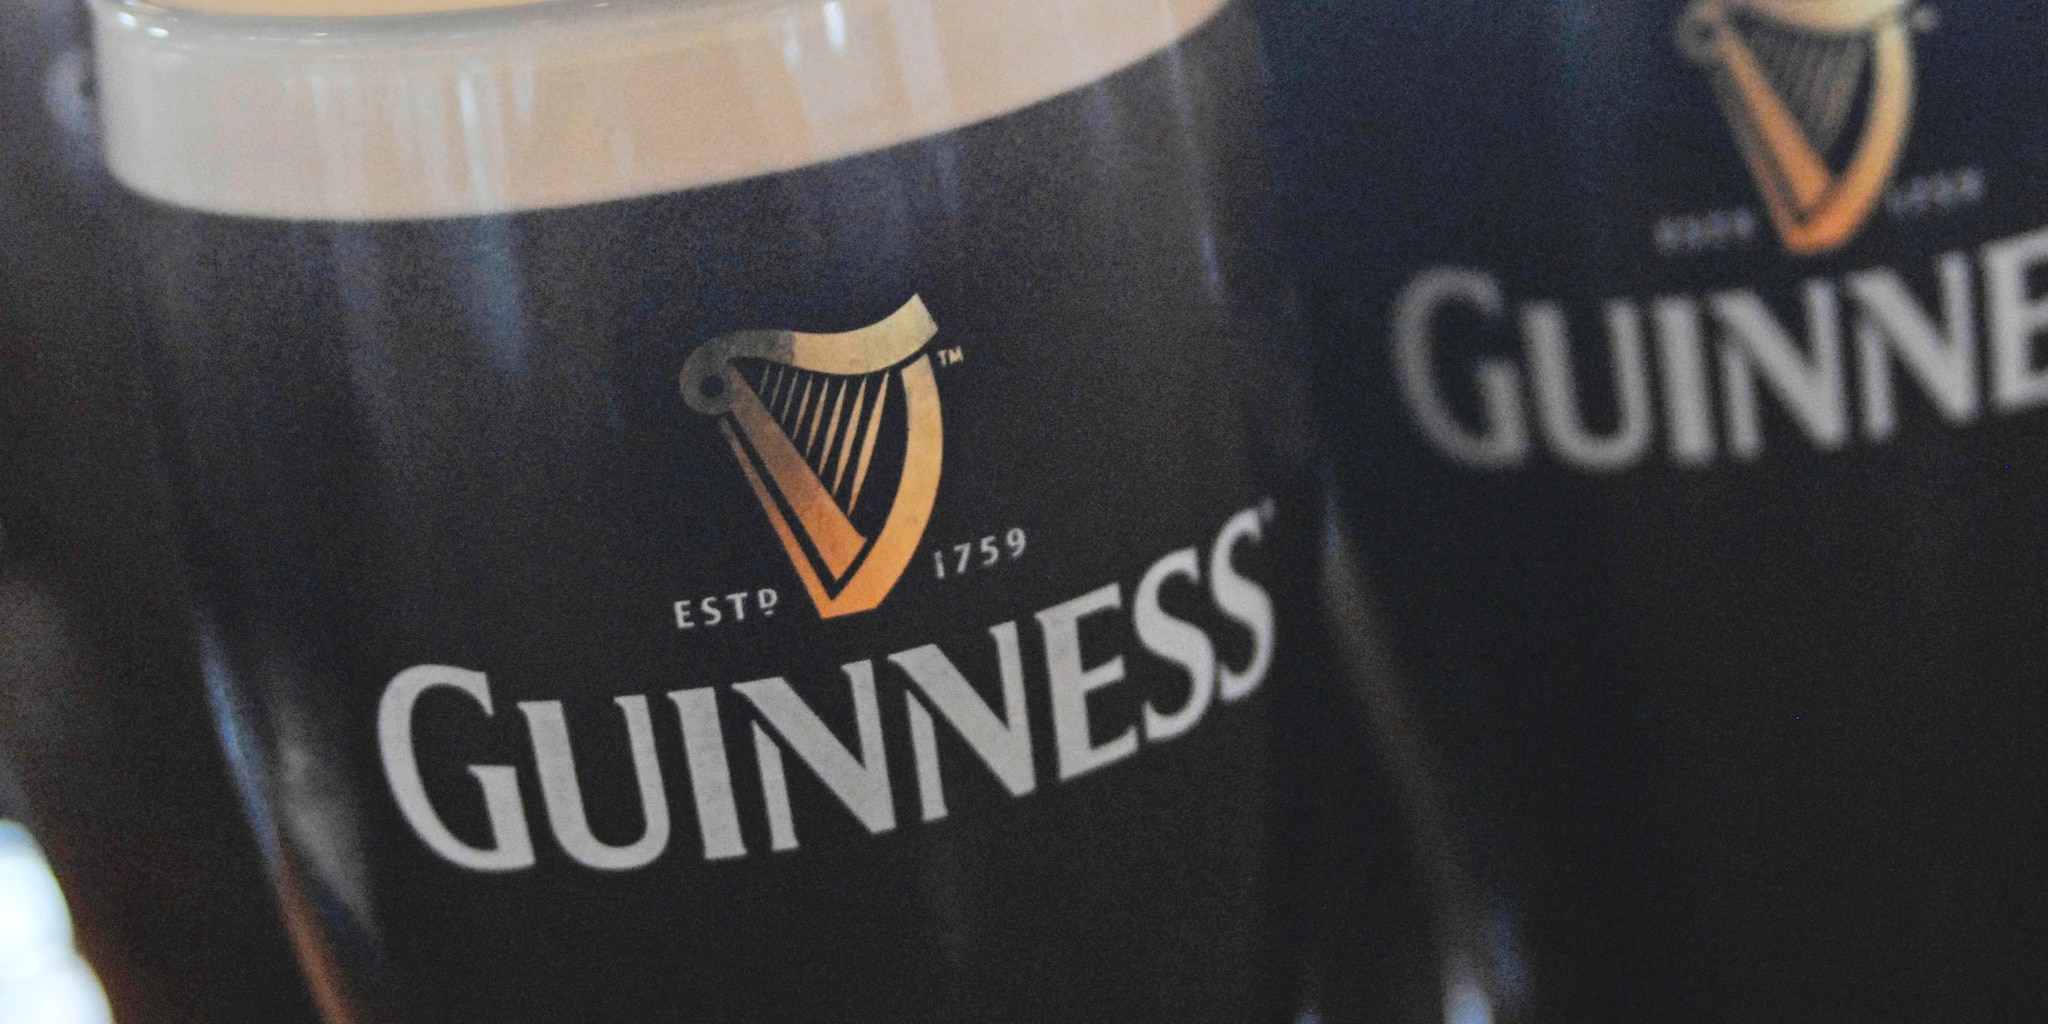 Enjoy lunch at the Guinness Storehouse on the Ireland vacation